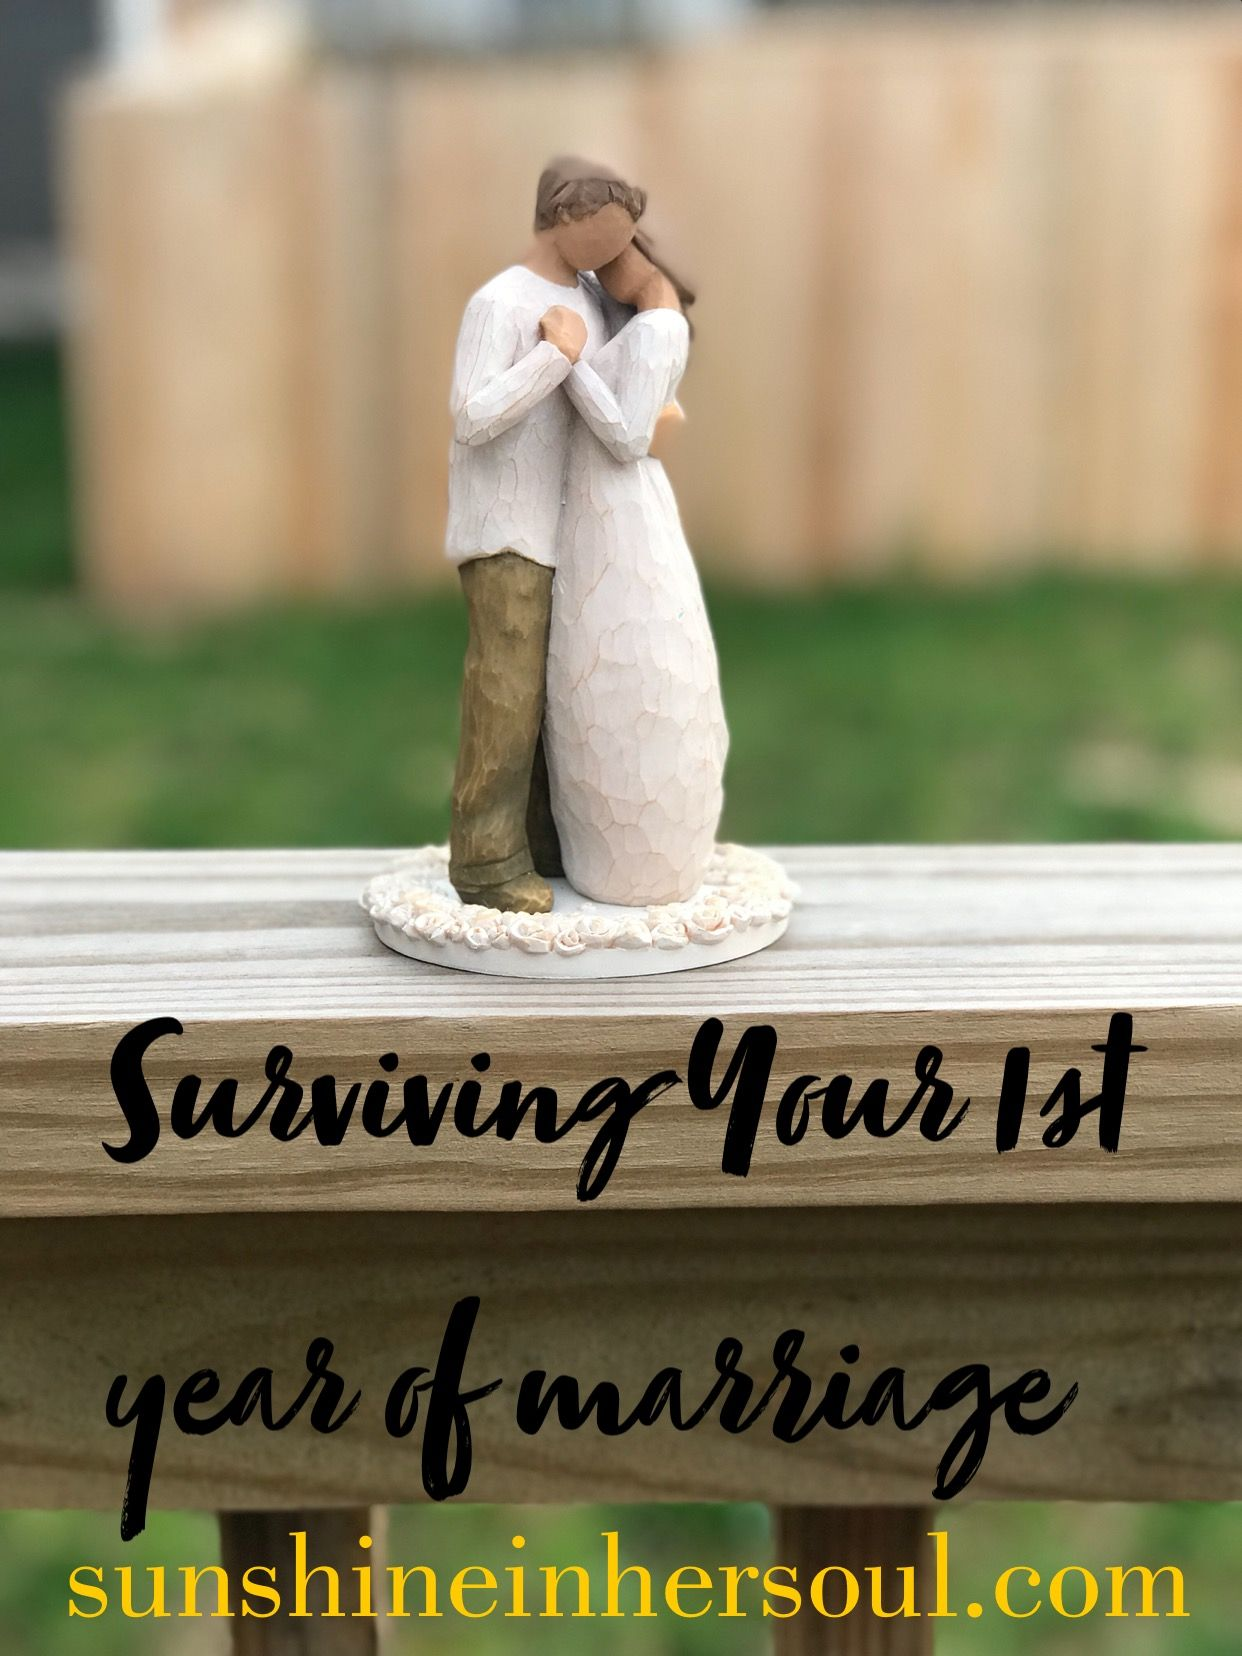 Marriage Series Walgreens Wives 3 First year of